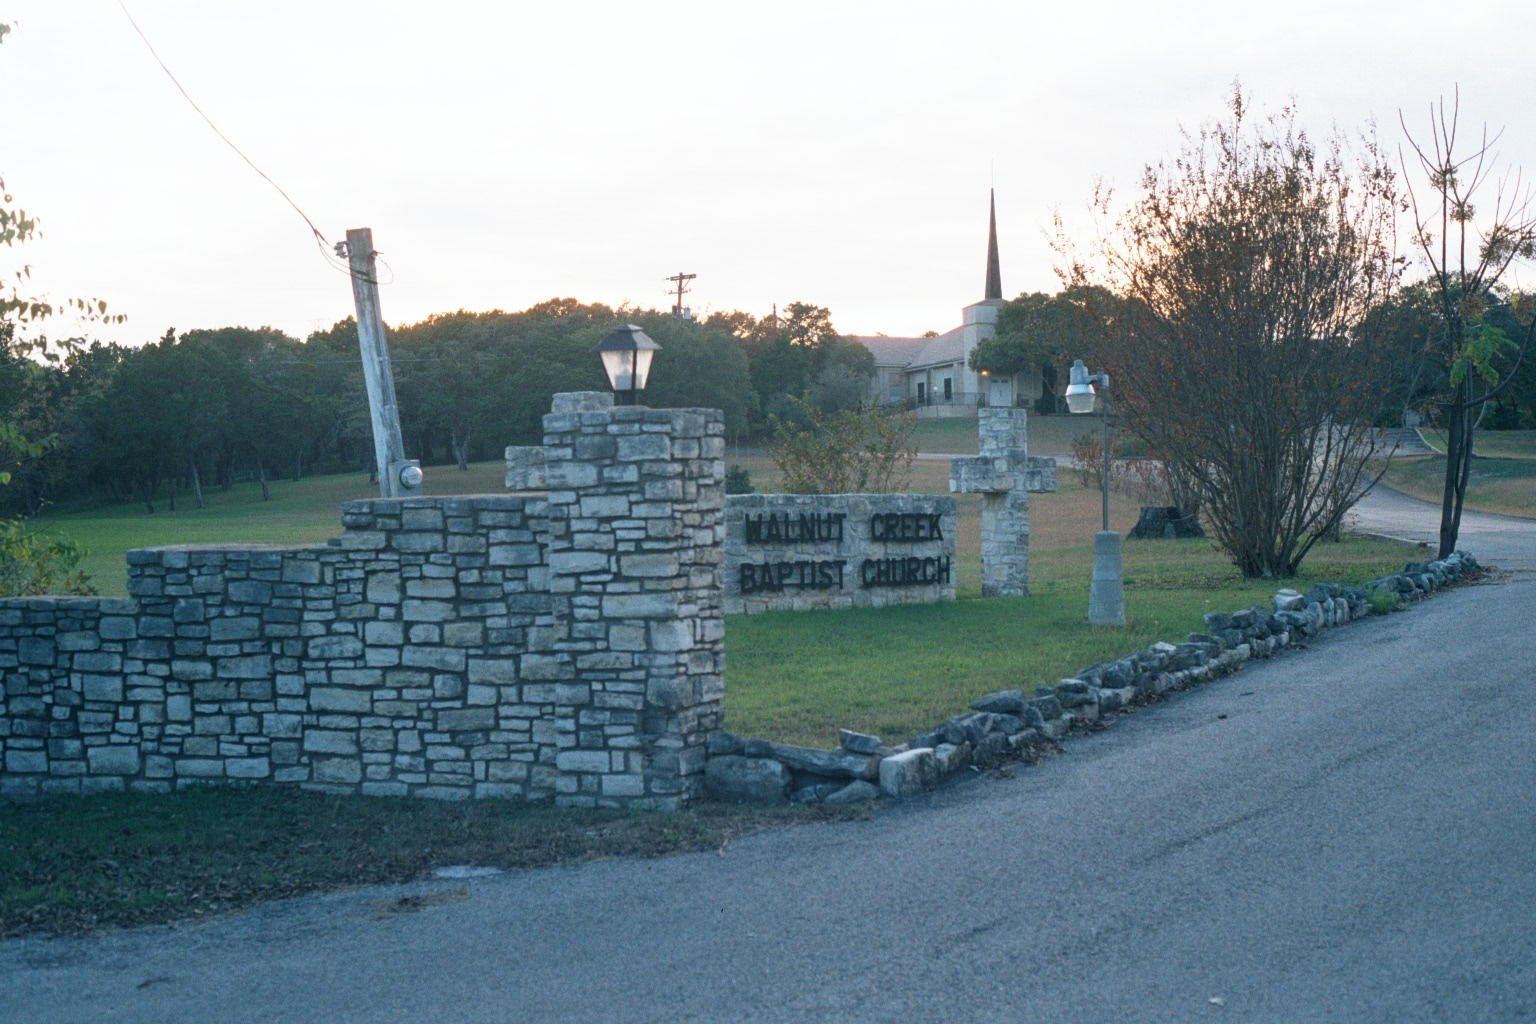 Walnut Creek Baptist Church Cemetery